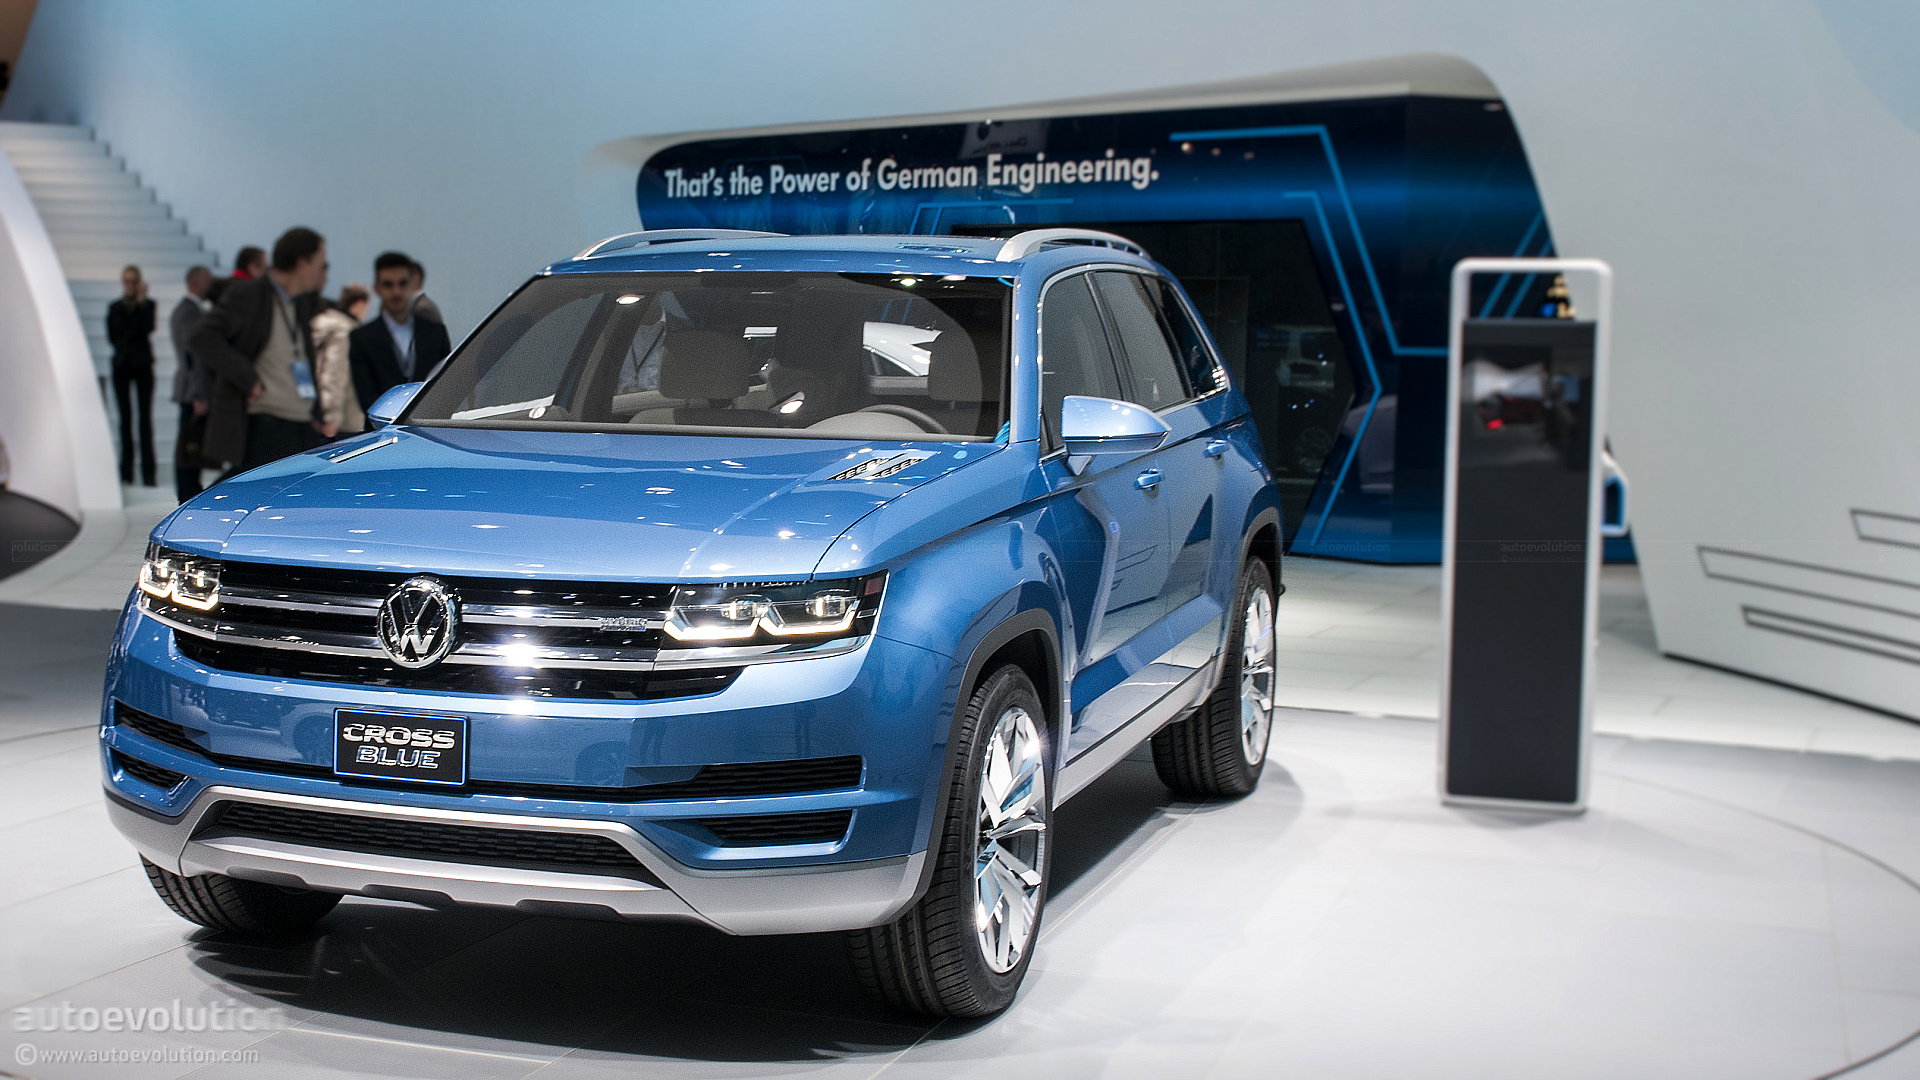 Volkswagen's New SUV Will Be Named Atlas, German Media ...